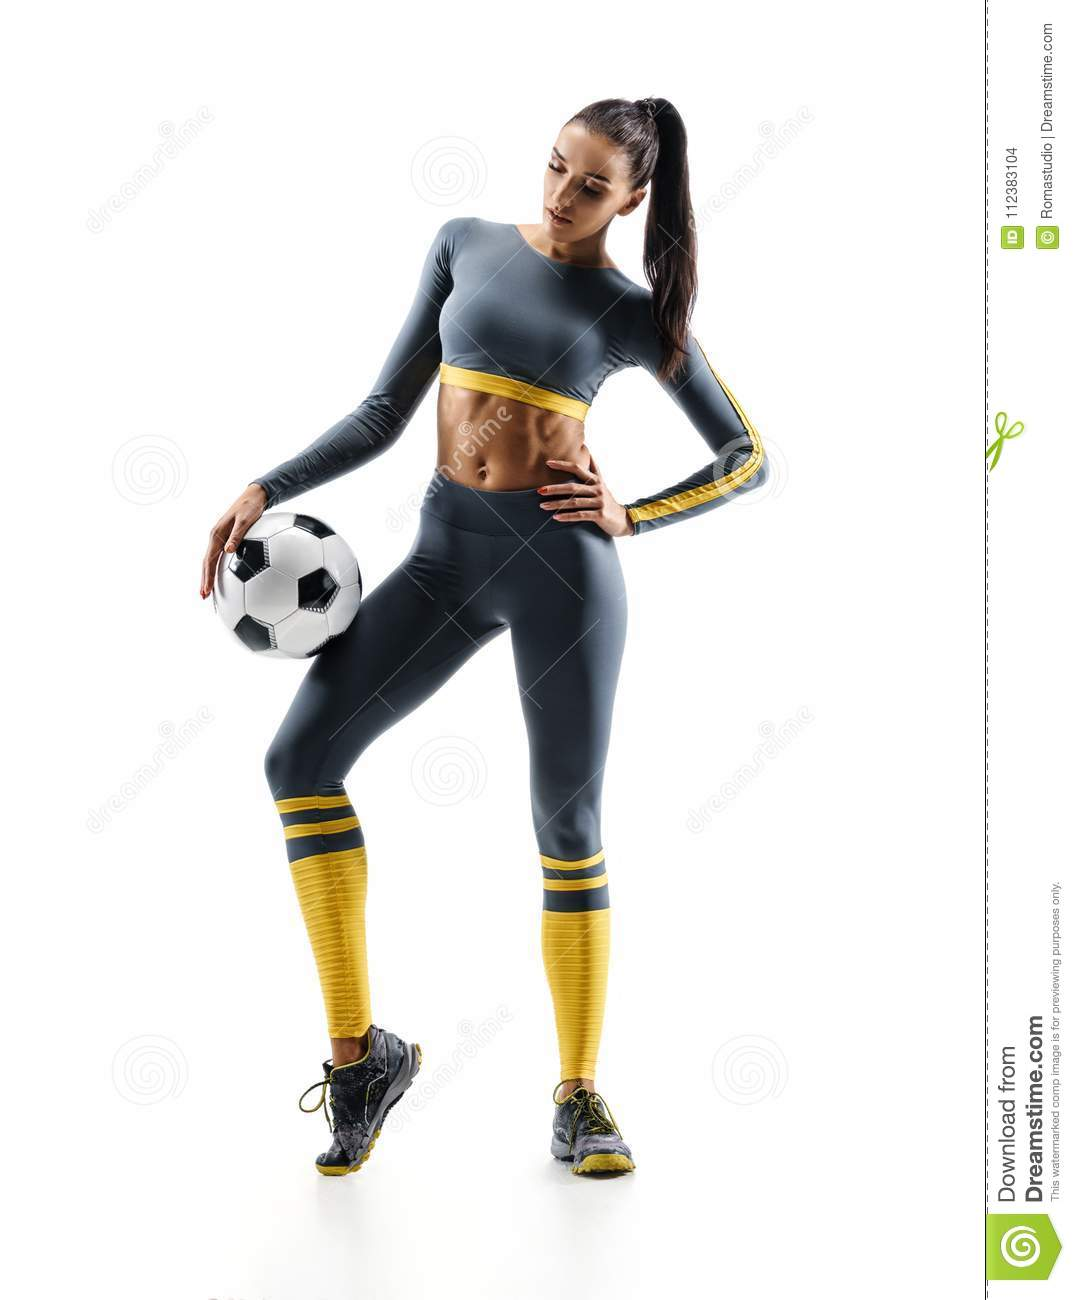 Football player woman standing in silhouette isolated on white background